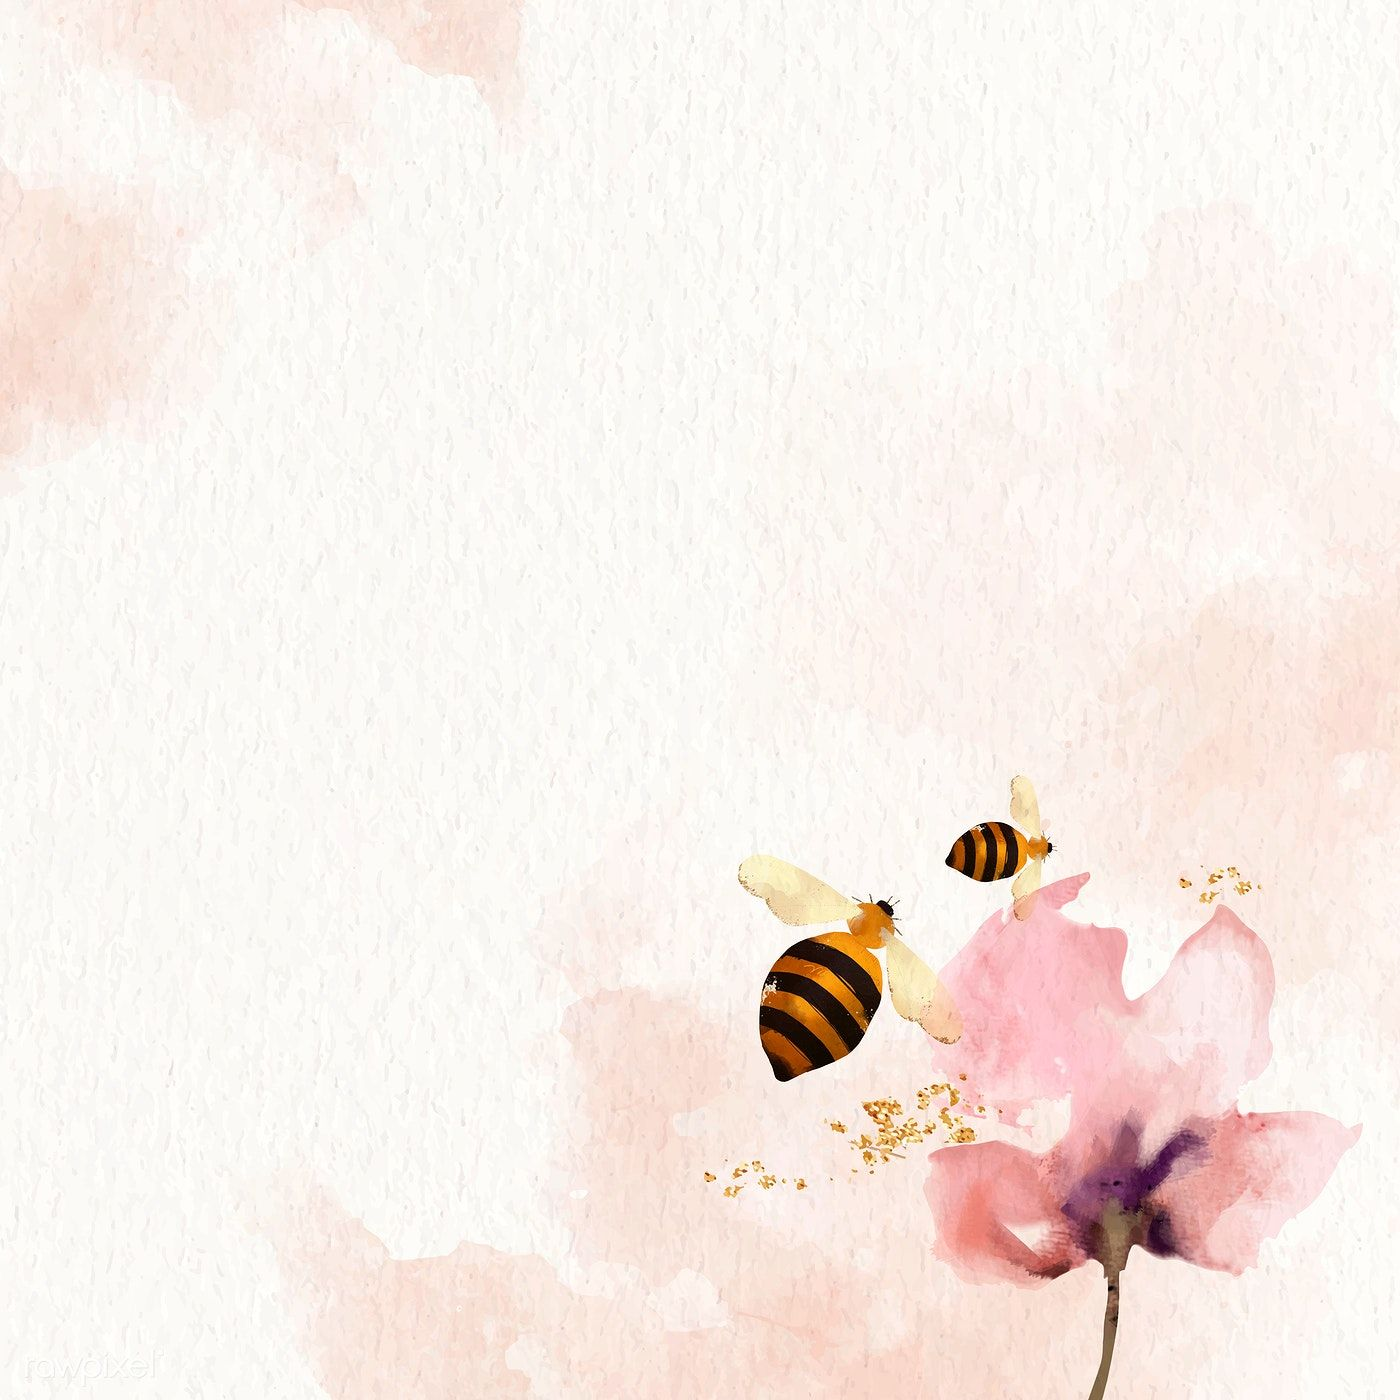 Honey Bees and flower watercolor background vector